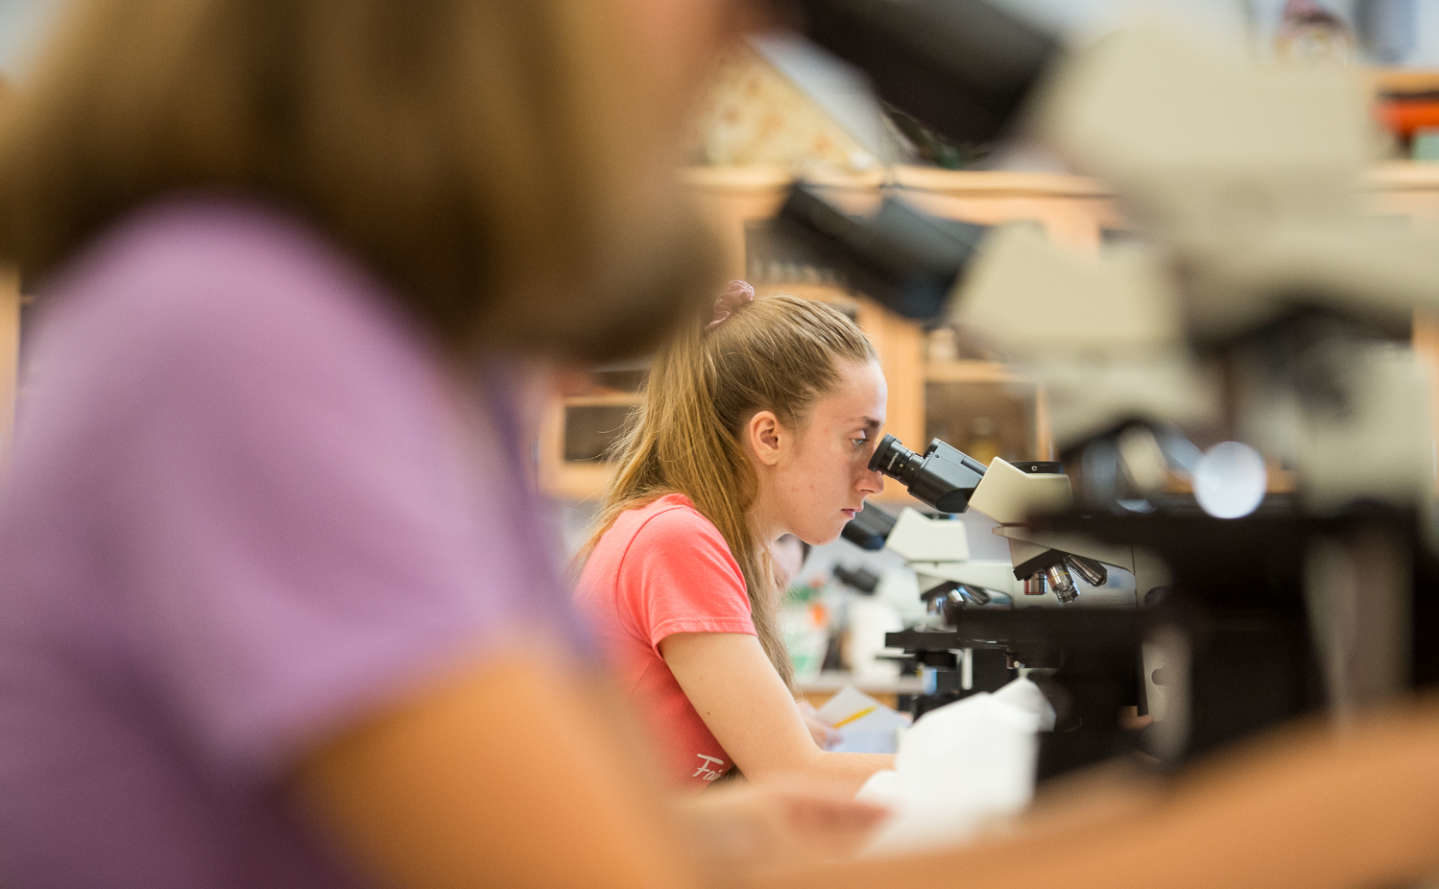 Student in lab focuses on microscope